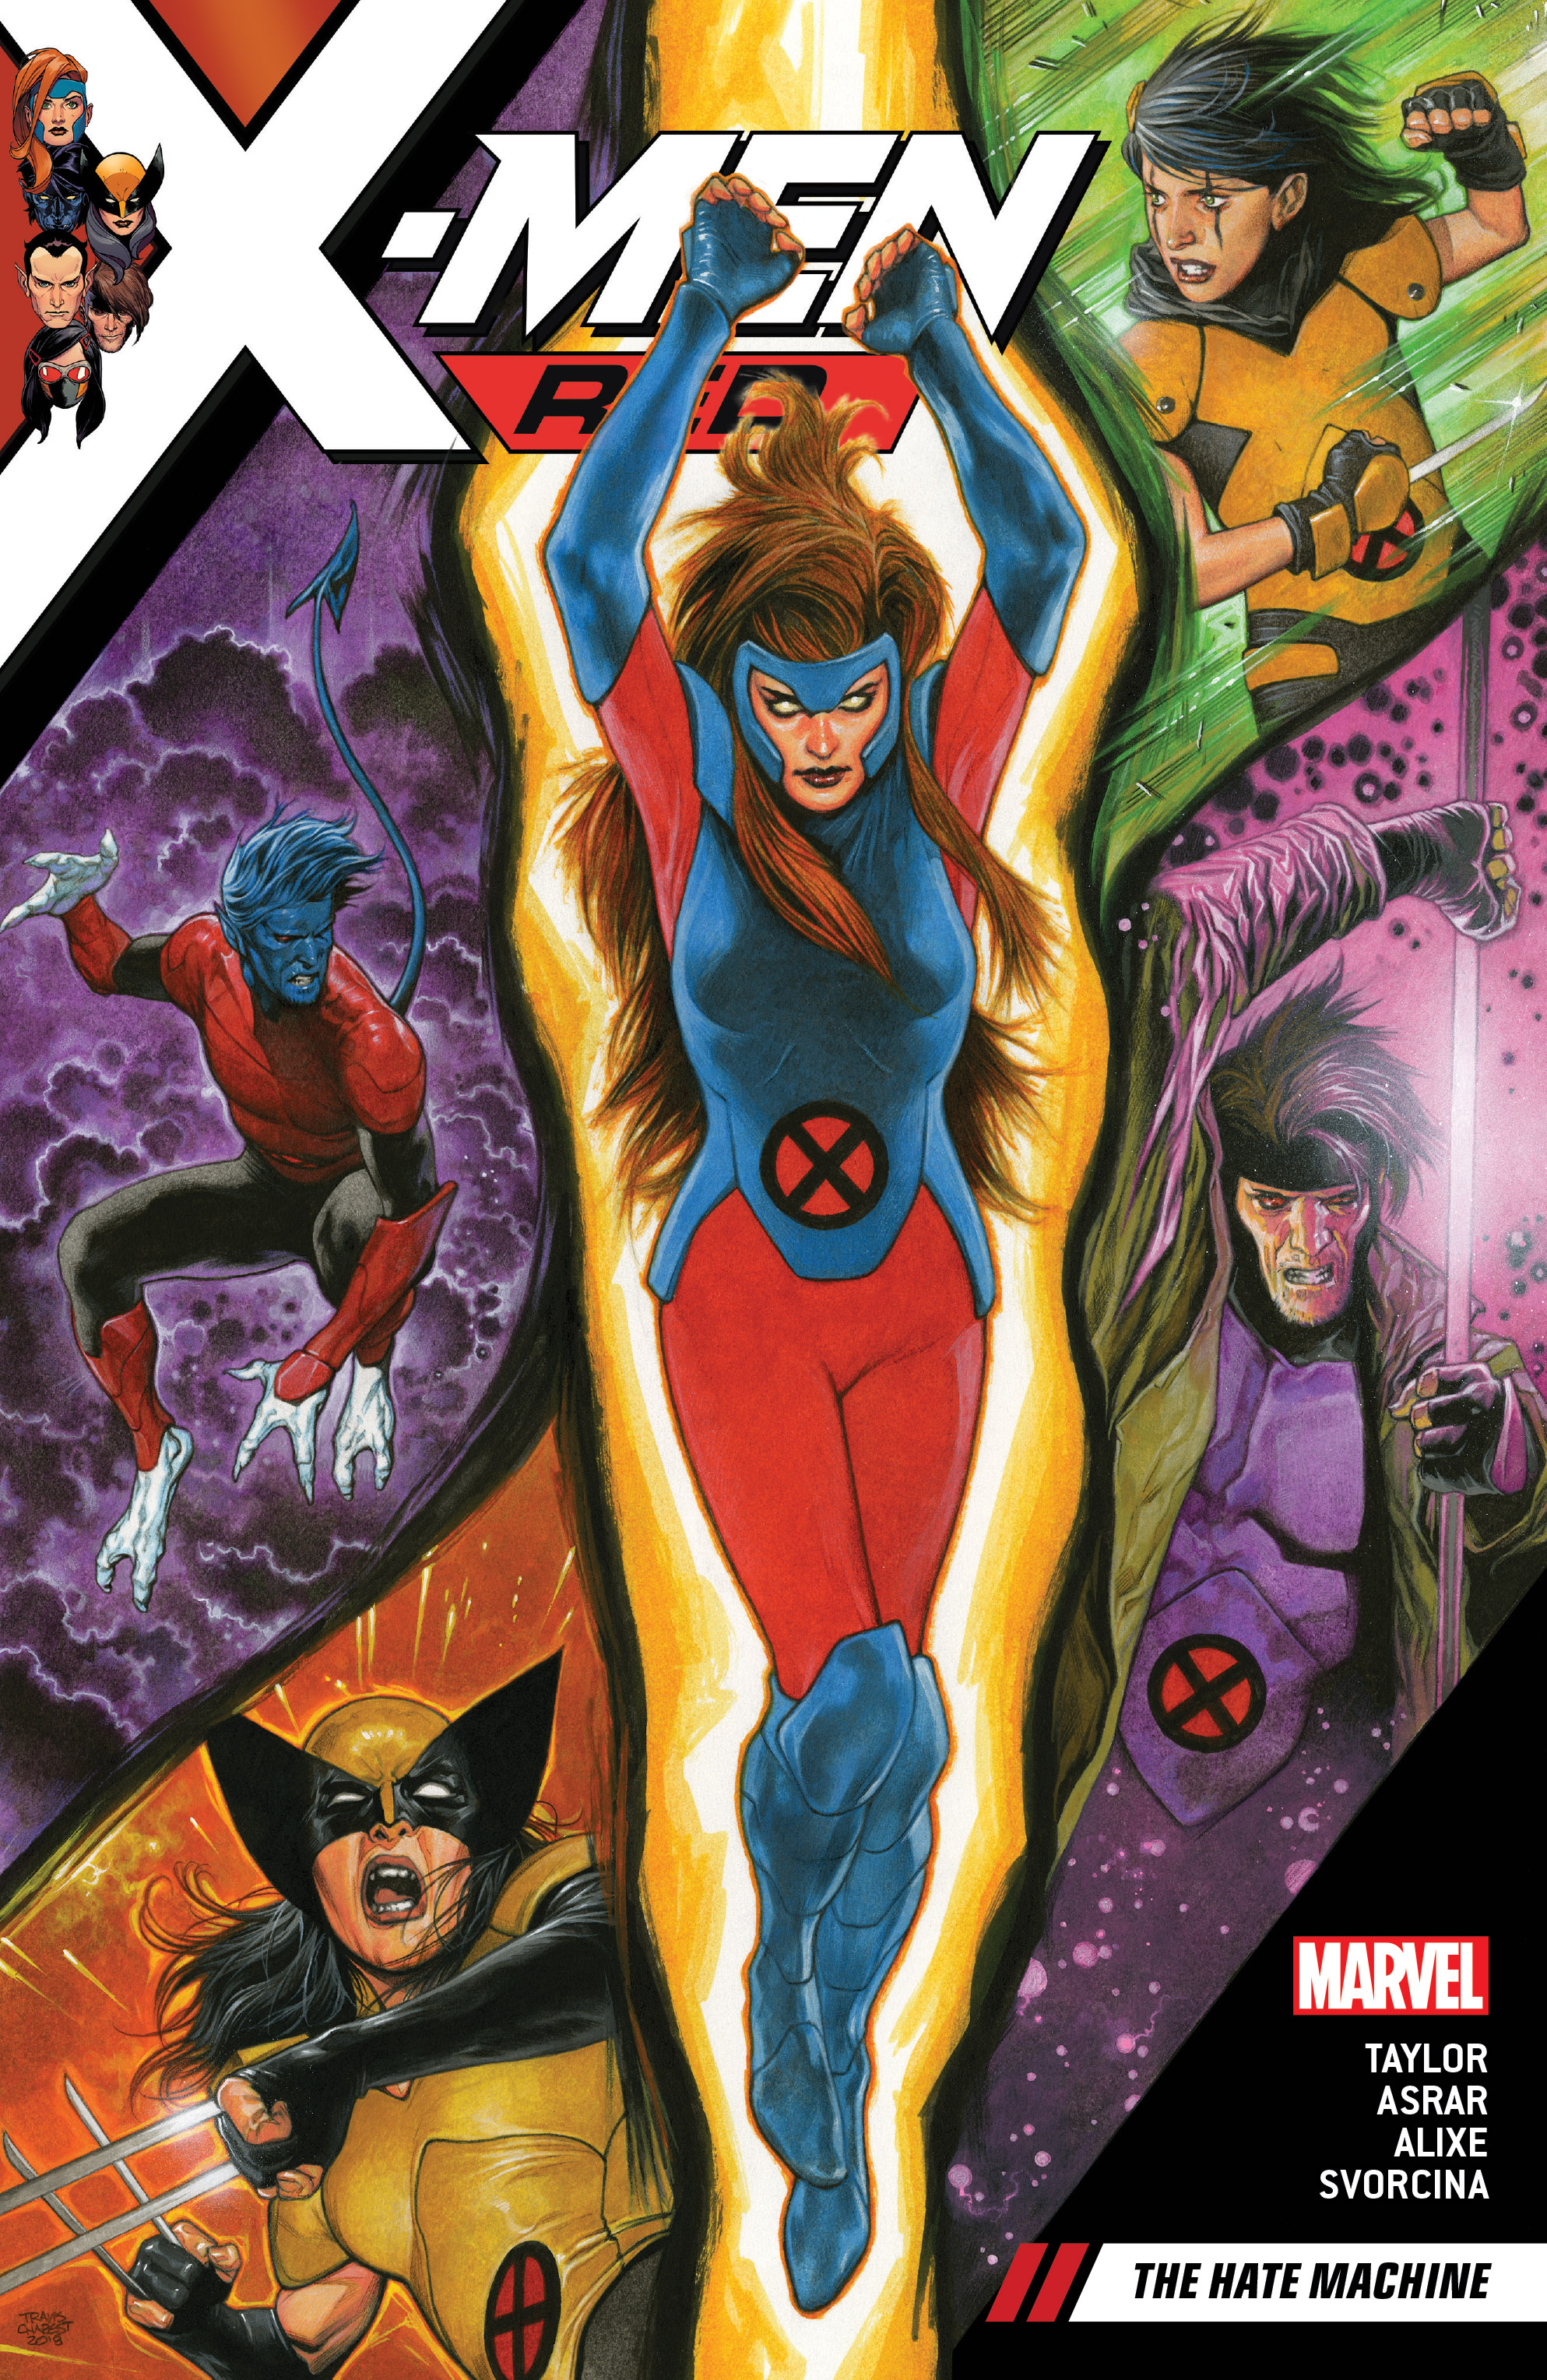 X-Men Red Vol. 1: The Hate Machine (Trade Paperback)